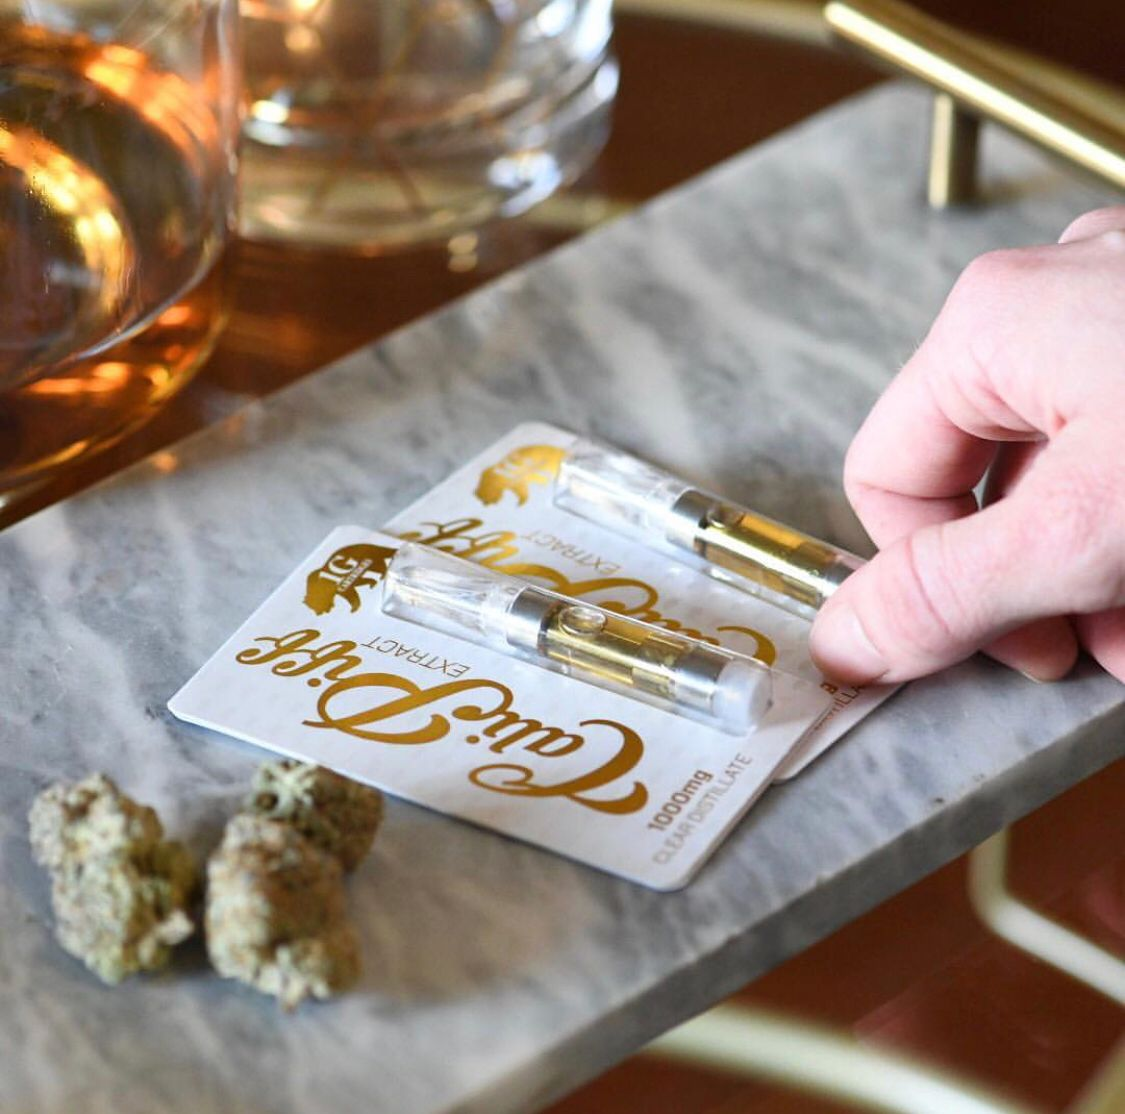 Cali Piff blister packs gold text with a holographic